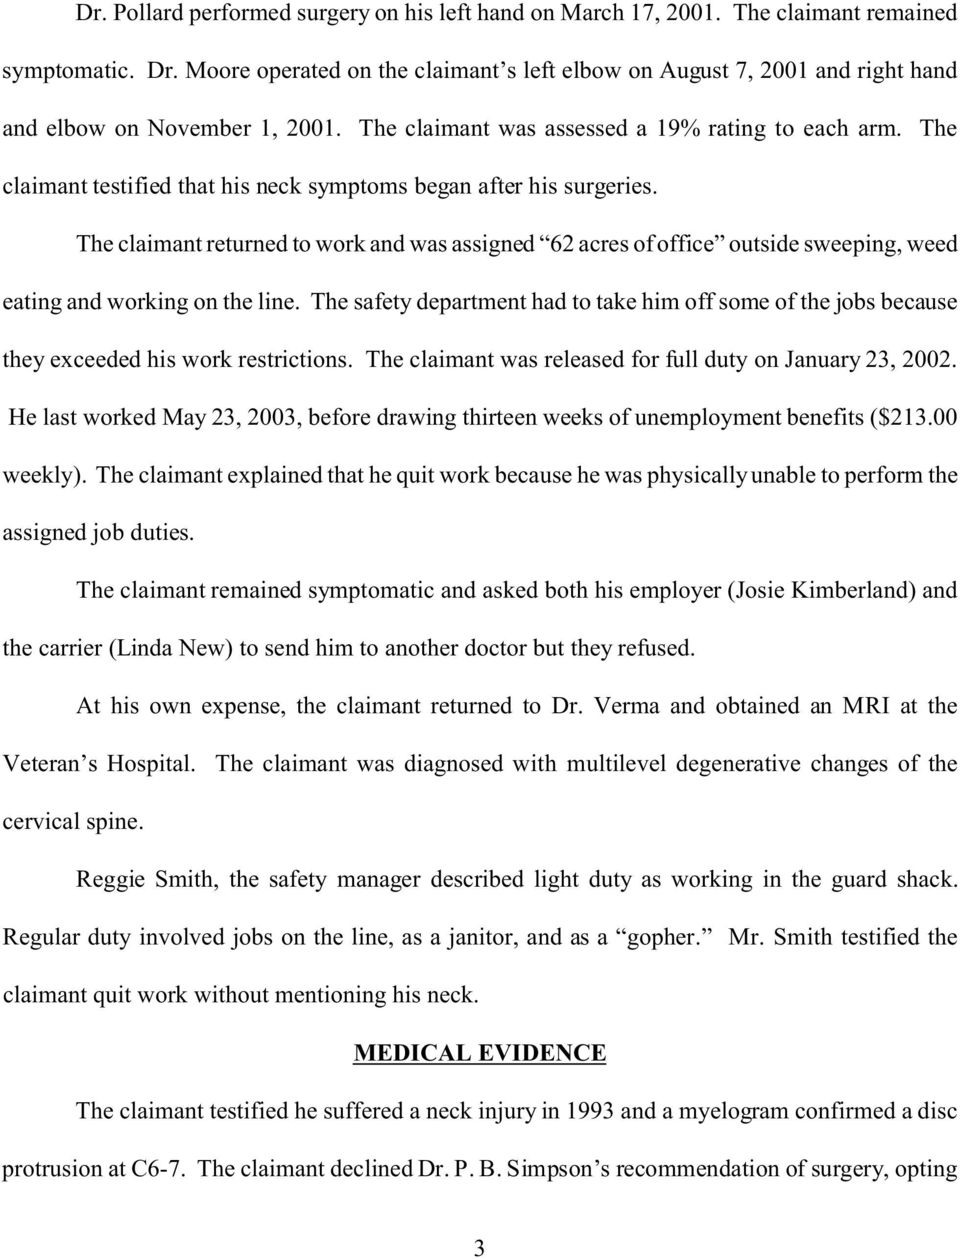 The claimant testified that his neck symptoms began after his surgeries. The claimant returned to work and was assigned 62 acres of office outside sweeping, weed eating and working on the line.